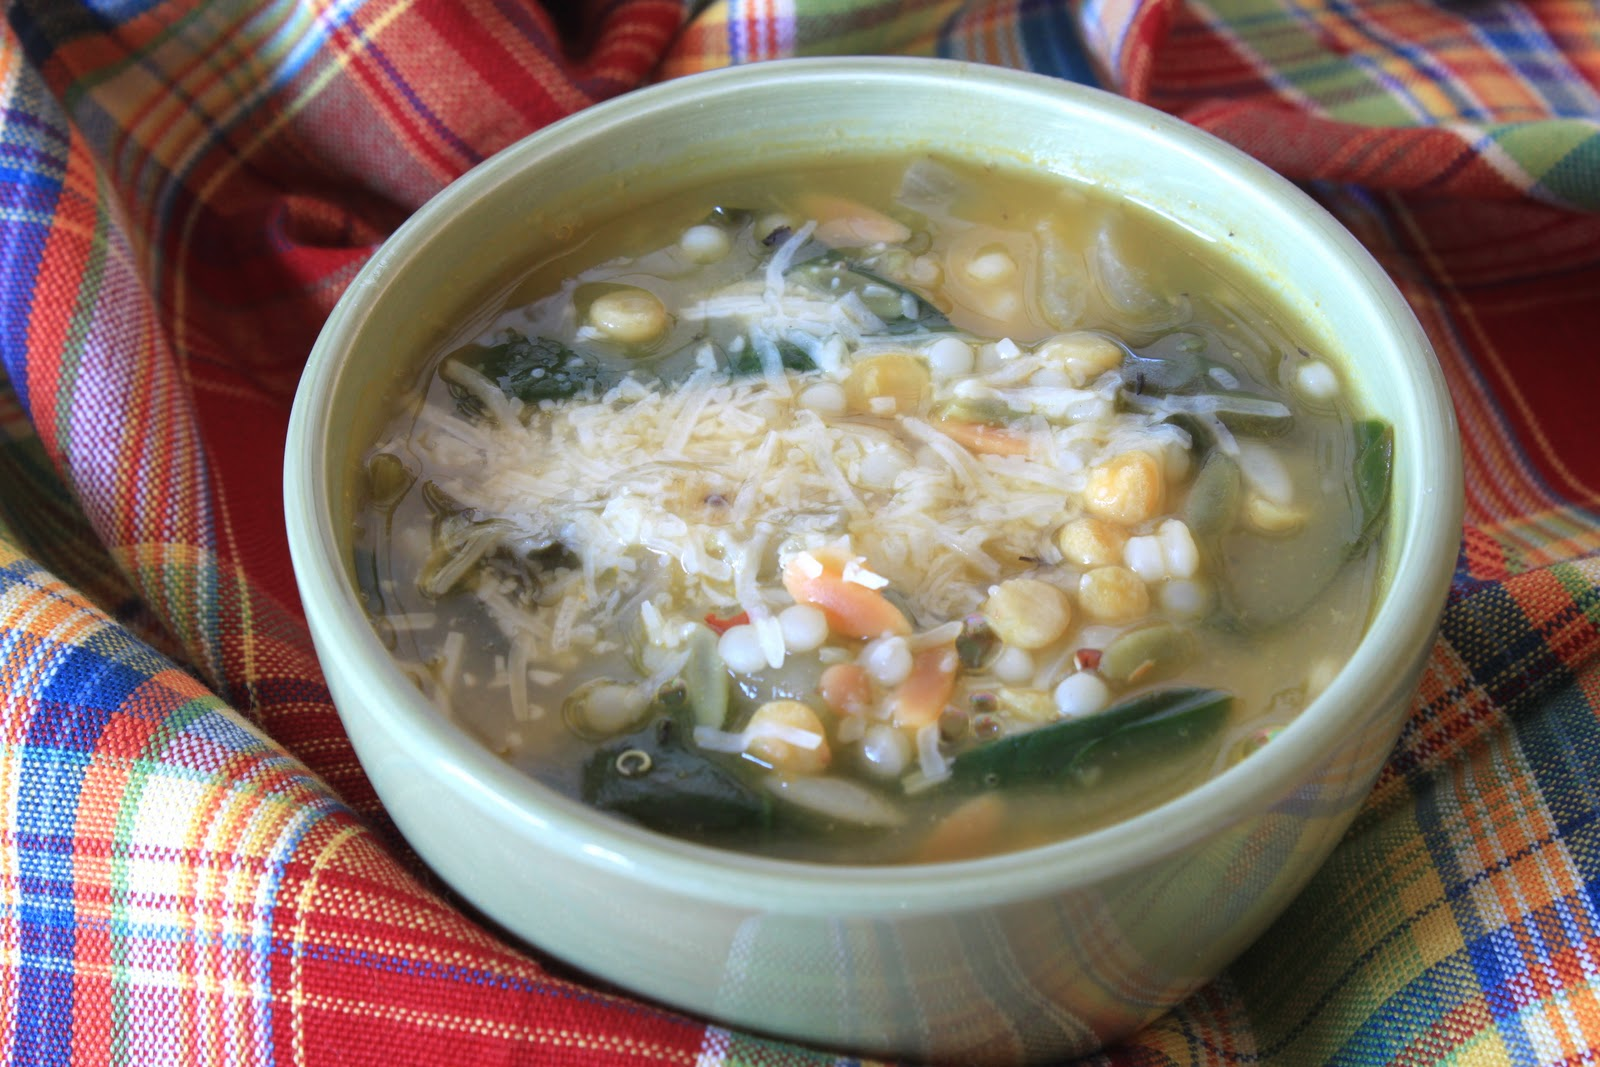 israeli couscous, lemon, and spinach soup - greens & chocolate